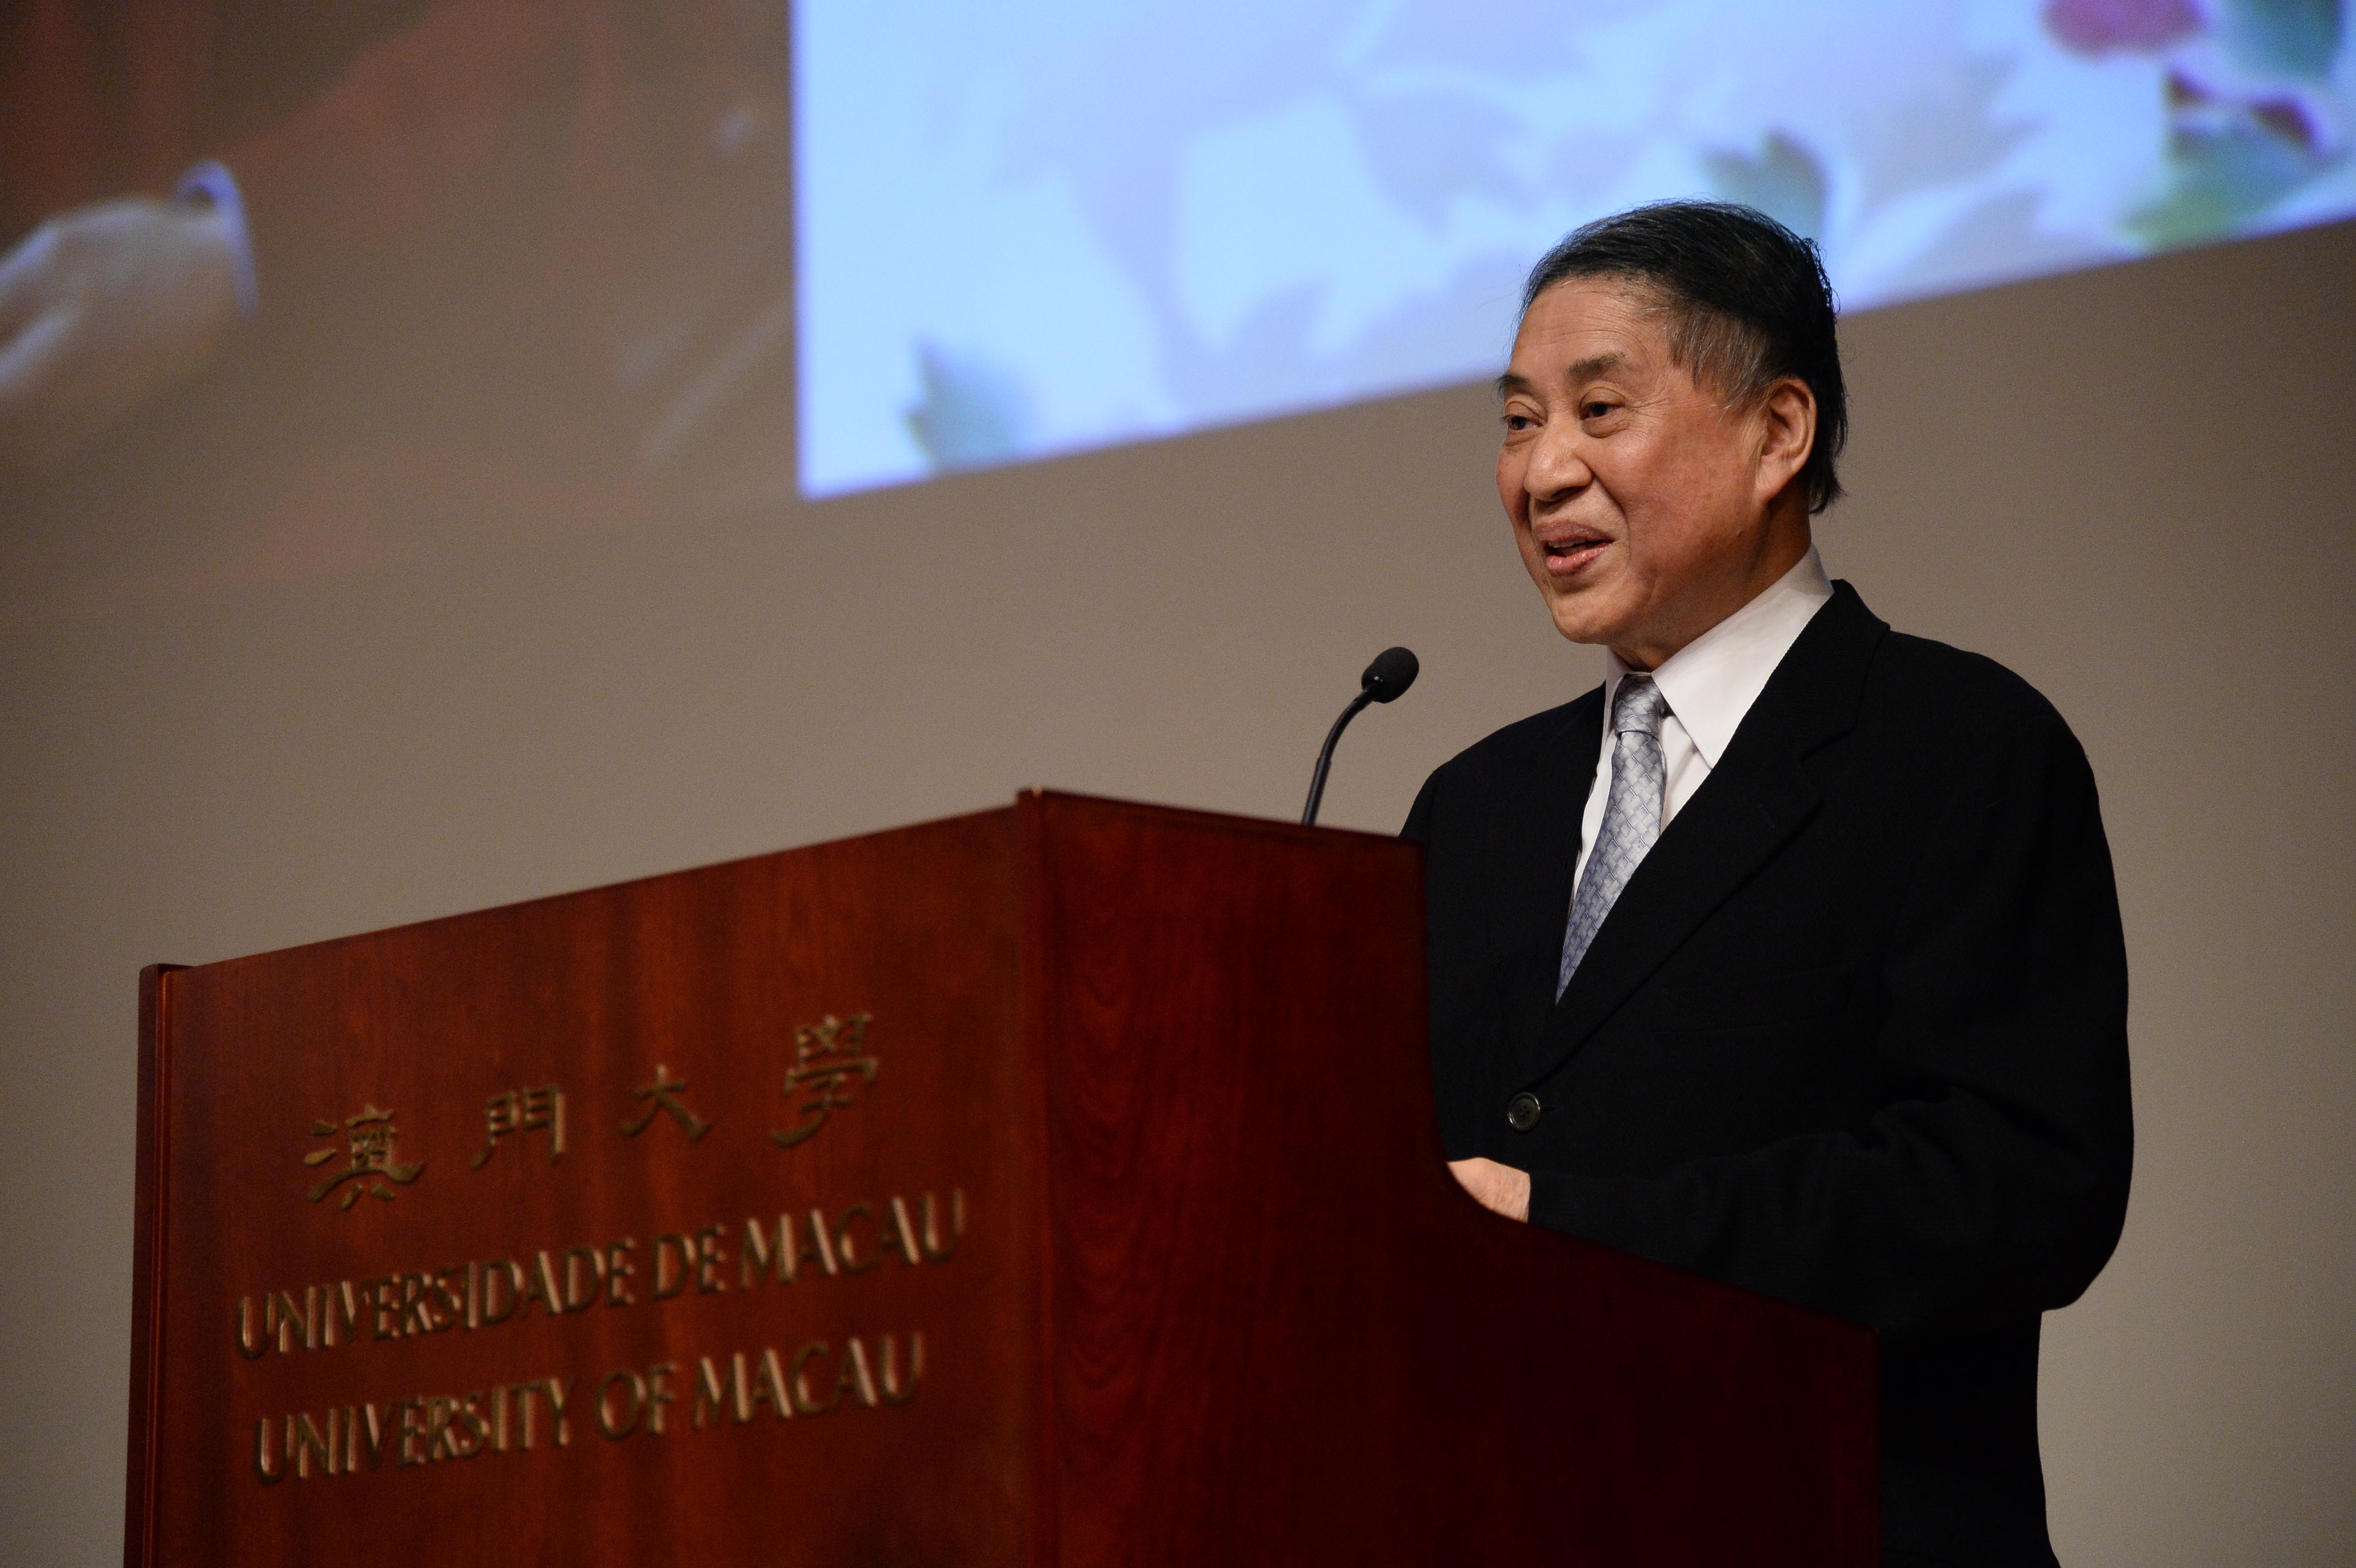 The renowned writer Pai Hsien-yung gives a talk at UM on the revitalisation of Kun opera